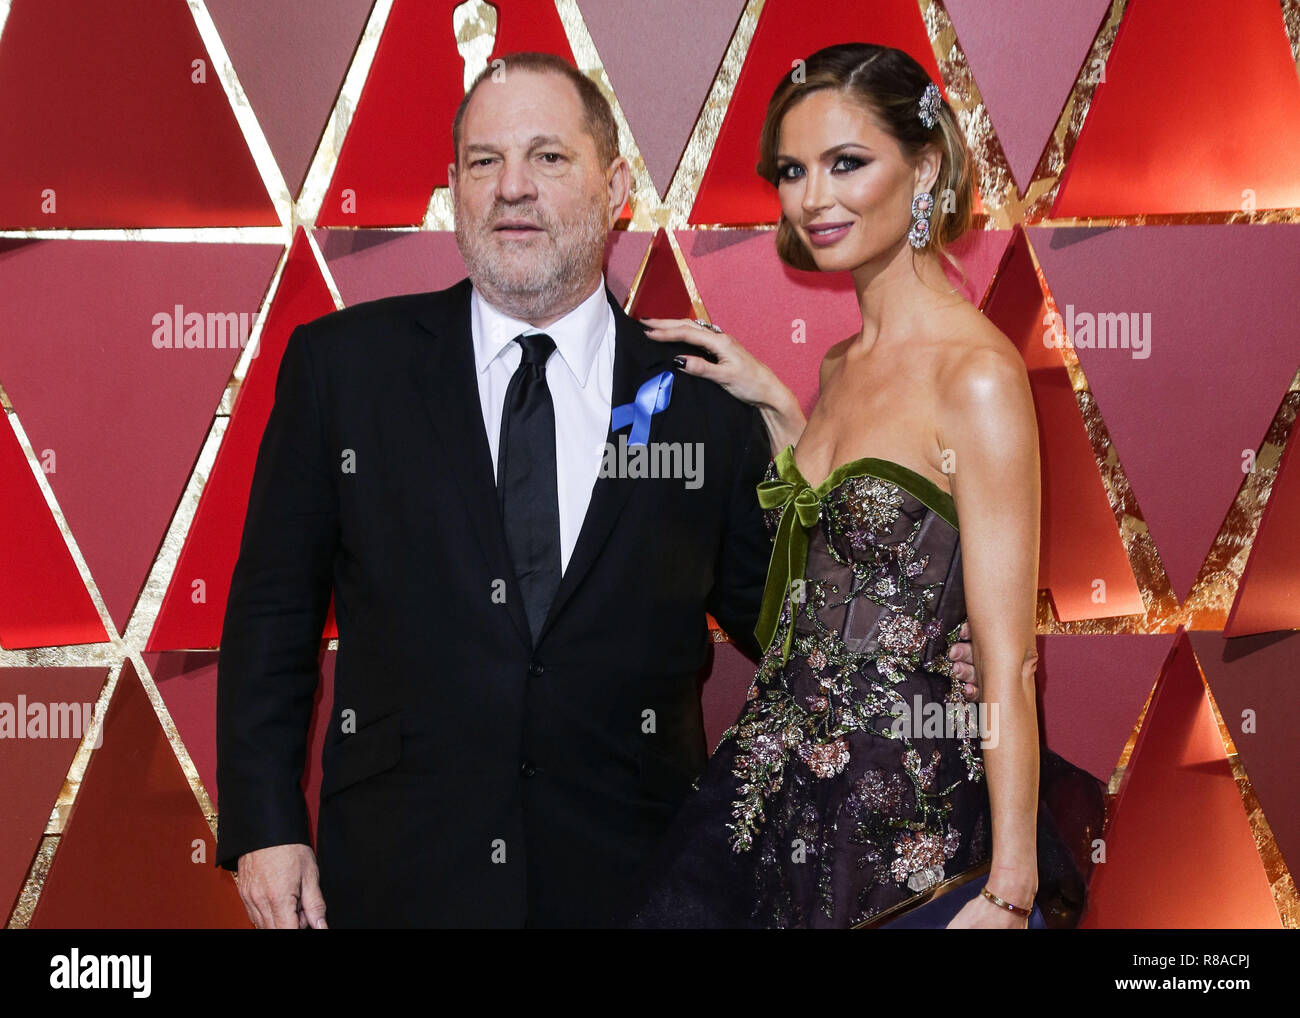 (FILE) Former NBC producer who worked on Ronan Farrow's Harvey Weinstein reporting breaks silence. A veteran NBC News producer who worked with Ronan Farrow on Farrow's explosive story on disgraced Hollywood mogul Harvey Weinstein has left the network and is speaking out, calling the network's decision not to make the story public 'a massive breach of journalistic integrity.' HOLLYWOOD, LOS ANGELES, CA, USA - FEBRUARY 26: Producer Harvey Weinstein and wife/Fashion Designer Georgina Chapman arrive at the 89th Annual Academy Awards held at the Hollywood and Highland Center on February 26, 2017 in - Stock Image